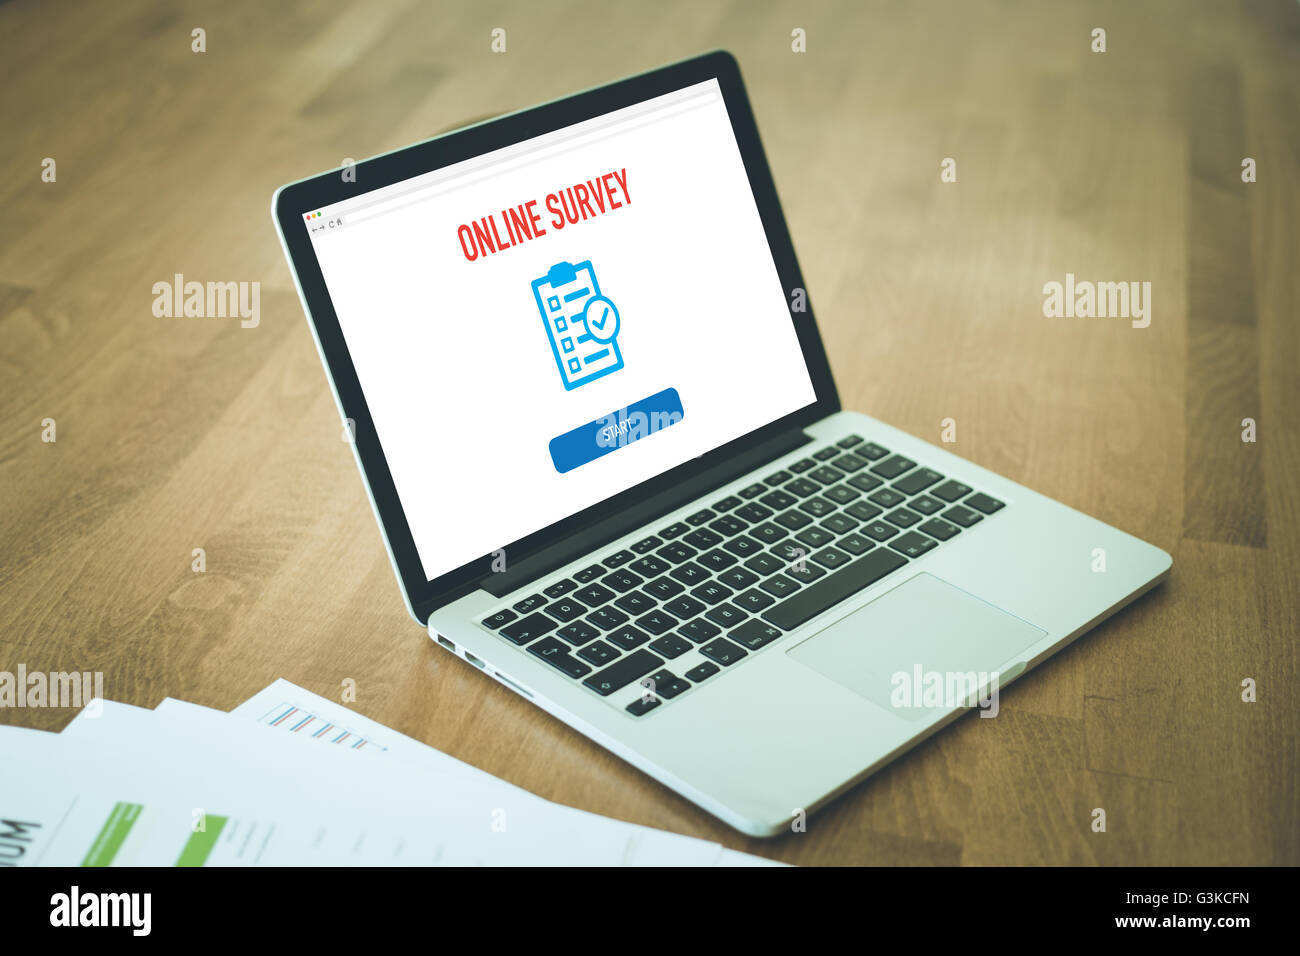 ONLINE SURVEY FEEDBACK CUSTOMER SATISFACTION CONCEPT - Stock Image